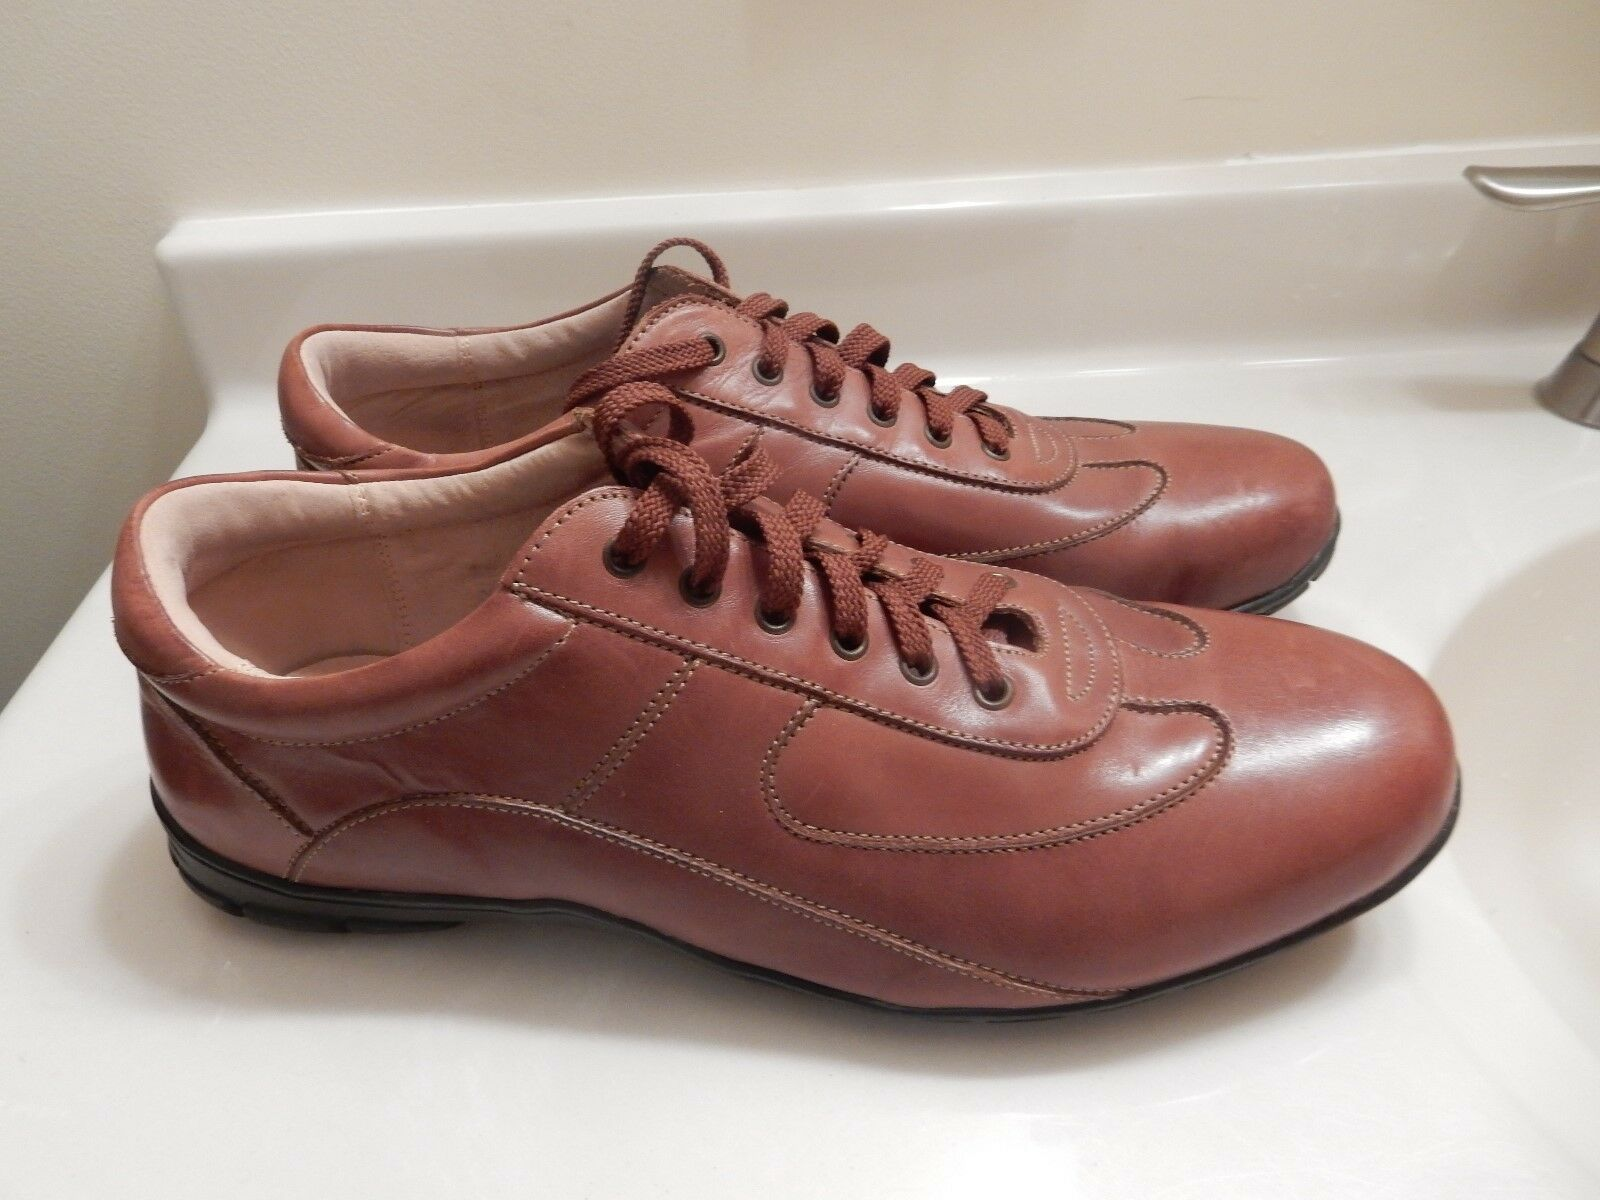 MEN'S LANDS' END BROWN LEATHER OXFORD SHOES SIZE 11M 243859